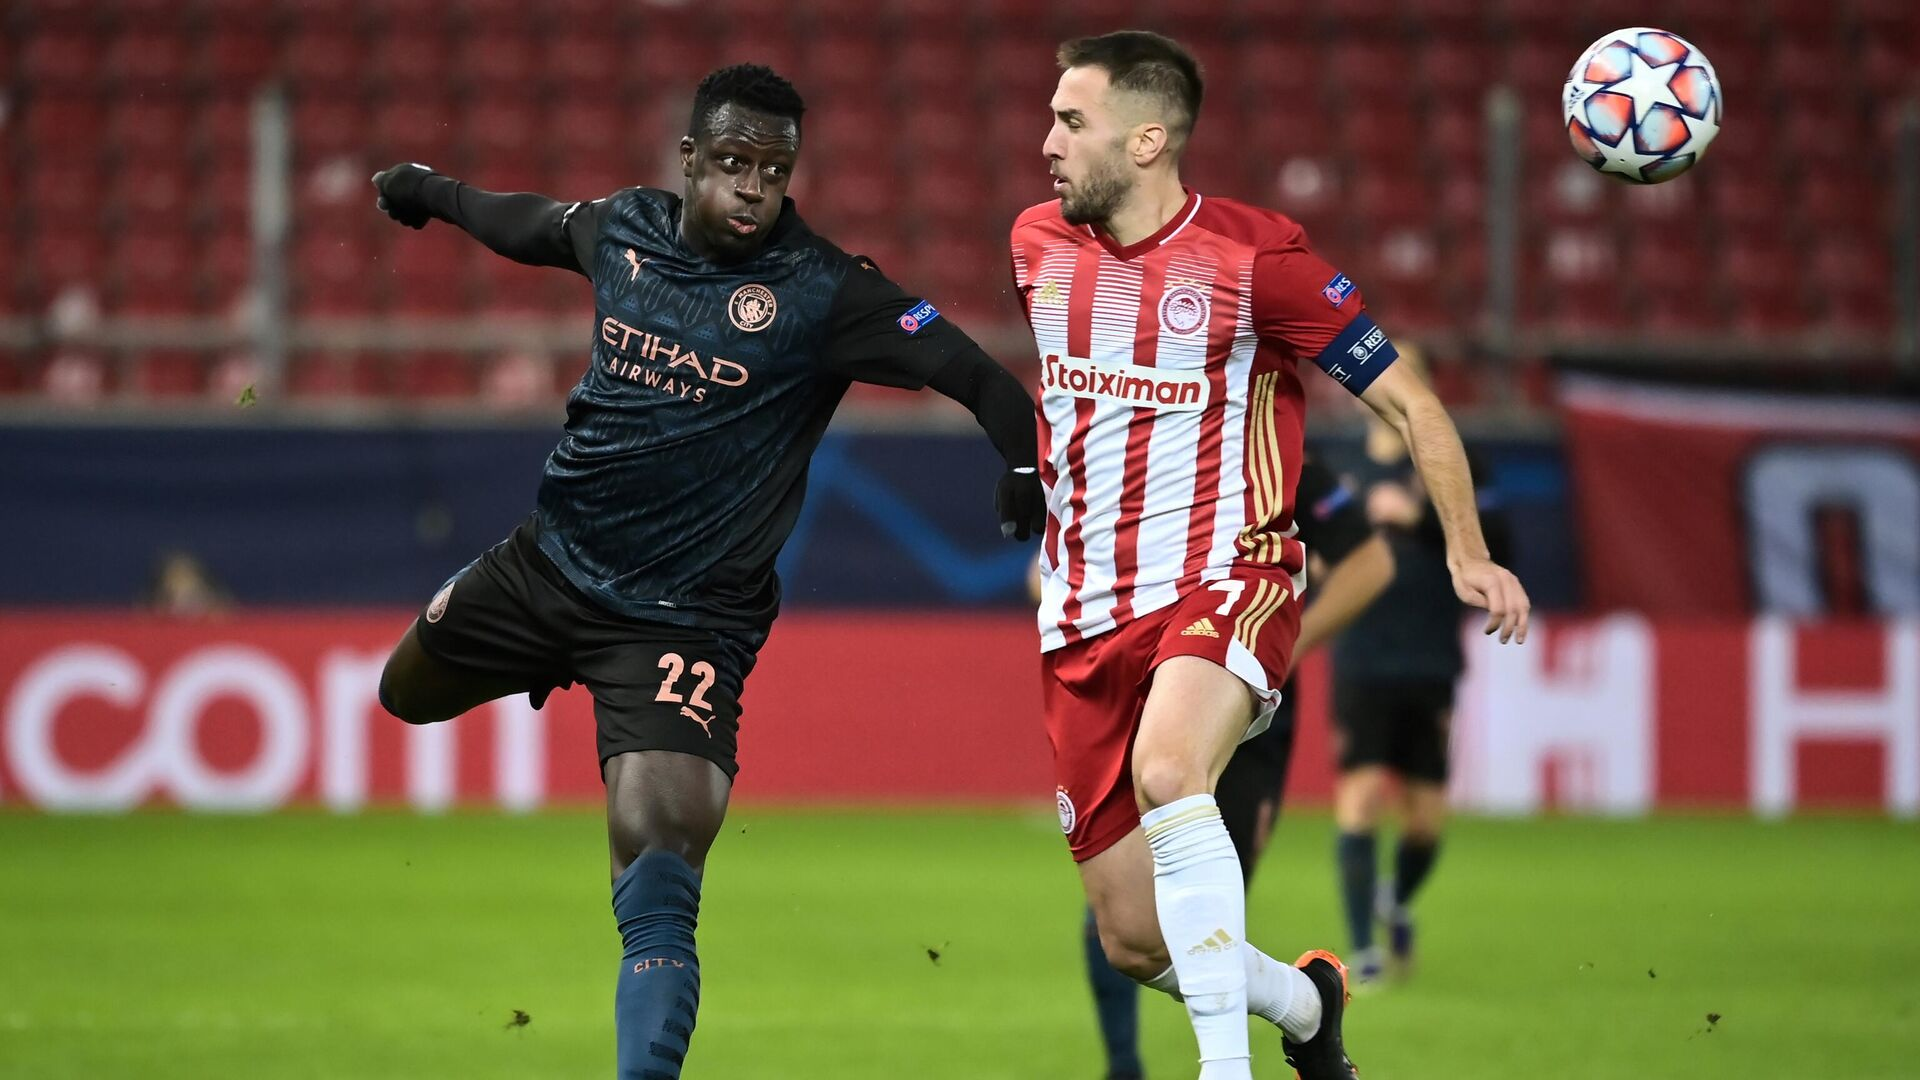 Manchester City's French defender Benjamin Mendy (L) fights for the ball with Olympiakos' Greek midfielder Kostas Fortounis during the UEFA Champions League group stage football match between Olympiakos and Manchester City, on November 25, 2020 at Georgios-Karaiskakis stadium in Piraeus, near Athens. (Photo by ARIS MESSINIS / AFP) - РИА Новости, 1920, 25.11.2020